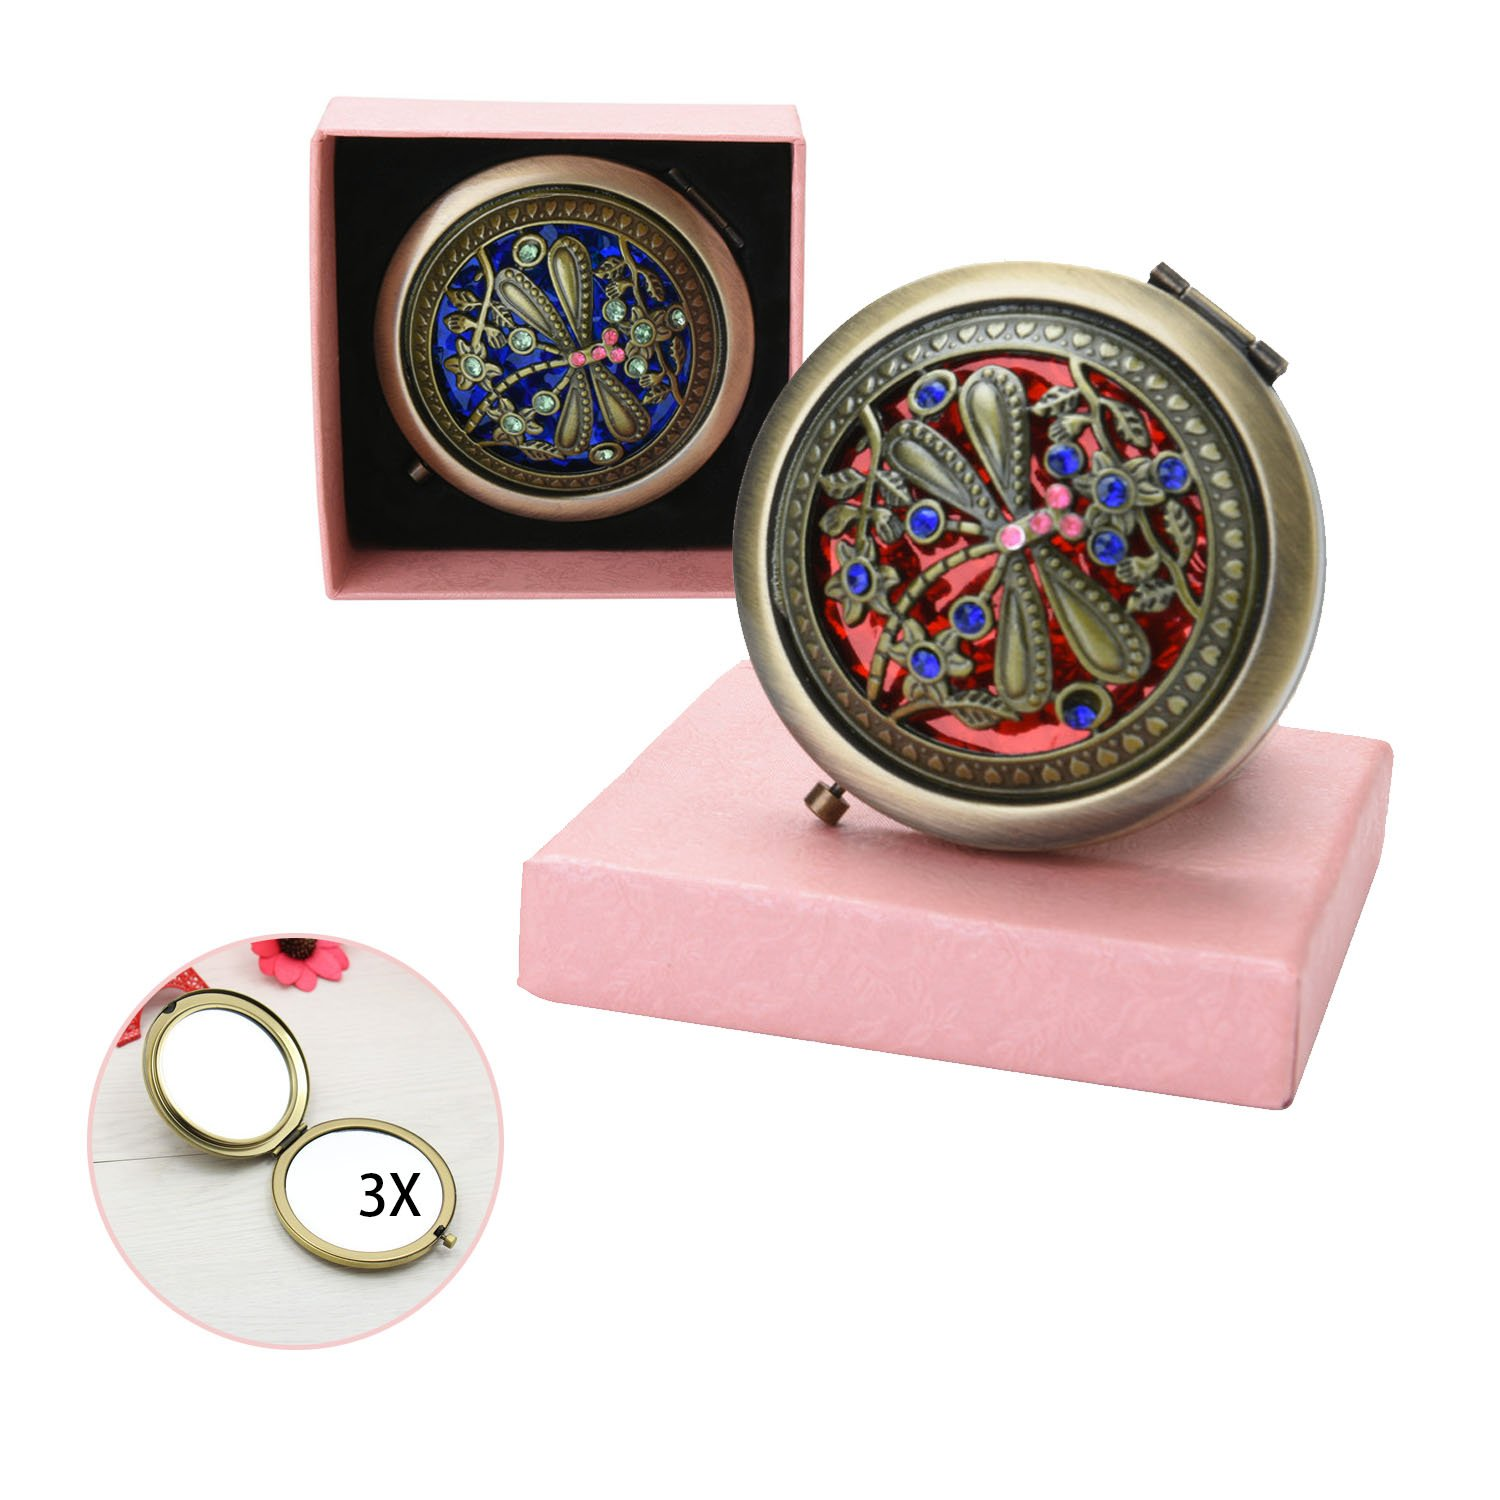 VintageBee Vintage Makeup Mirror Folding Pocket Mirror Round Compact Mirror Double-sided Hand Mirrors A